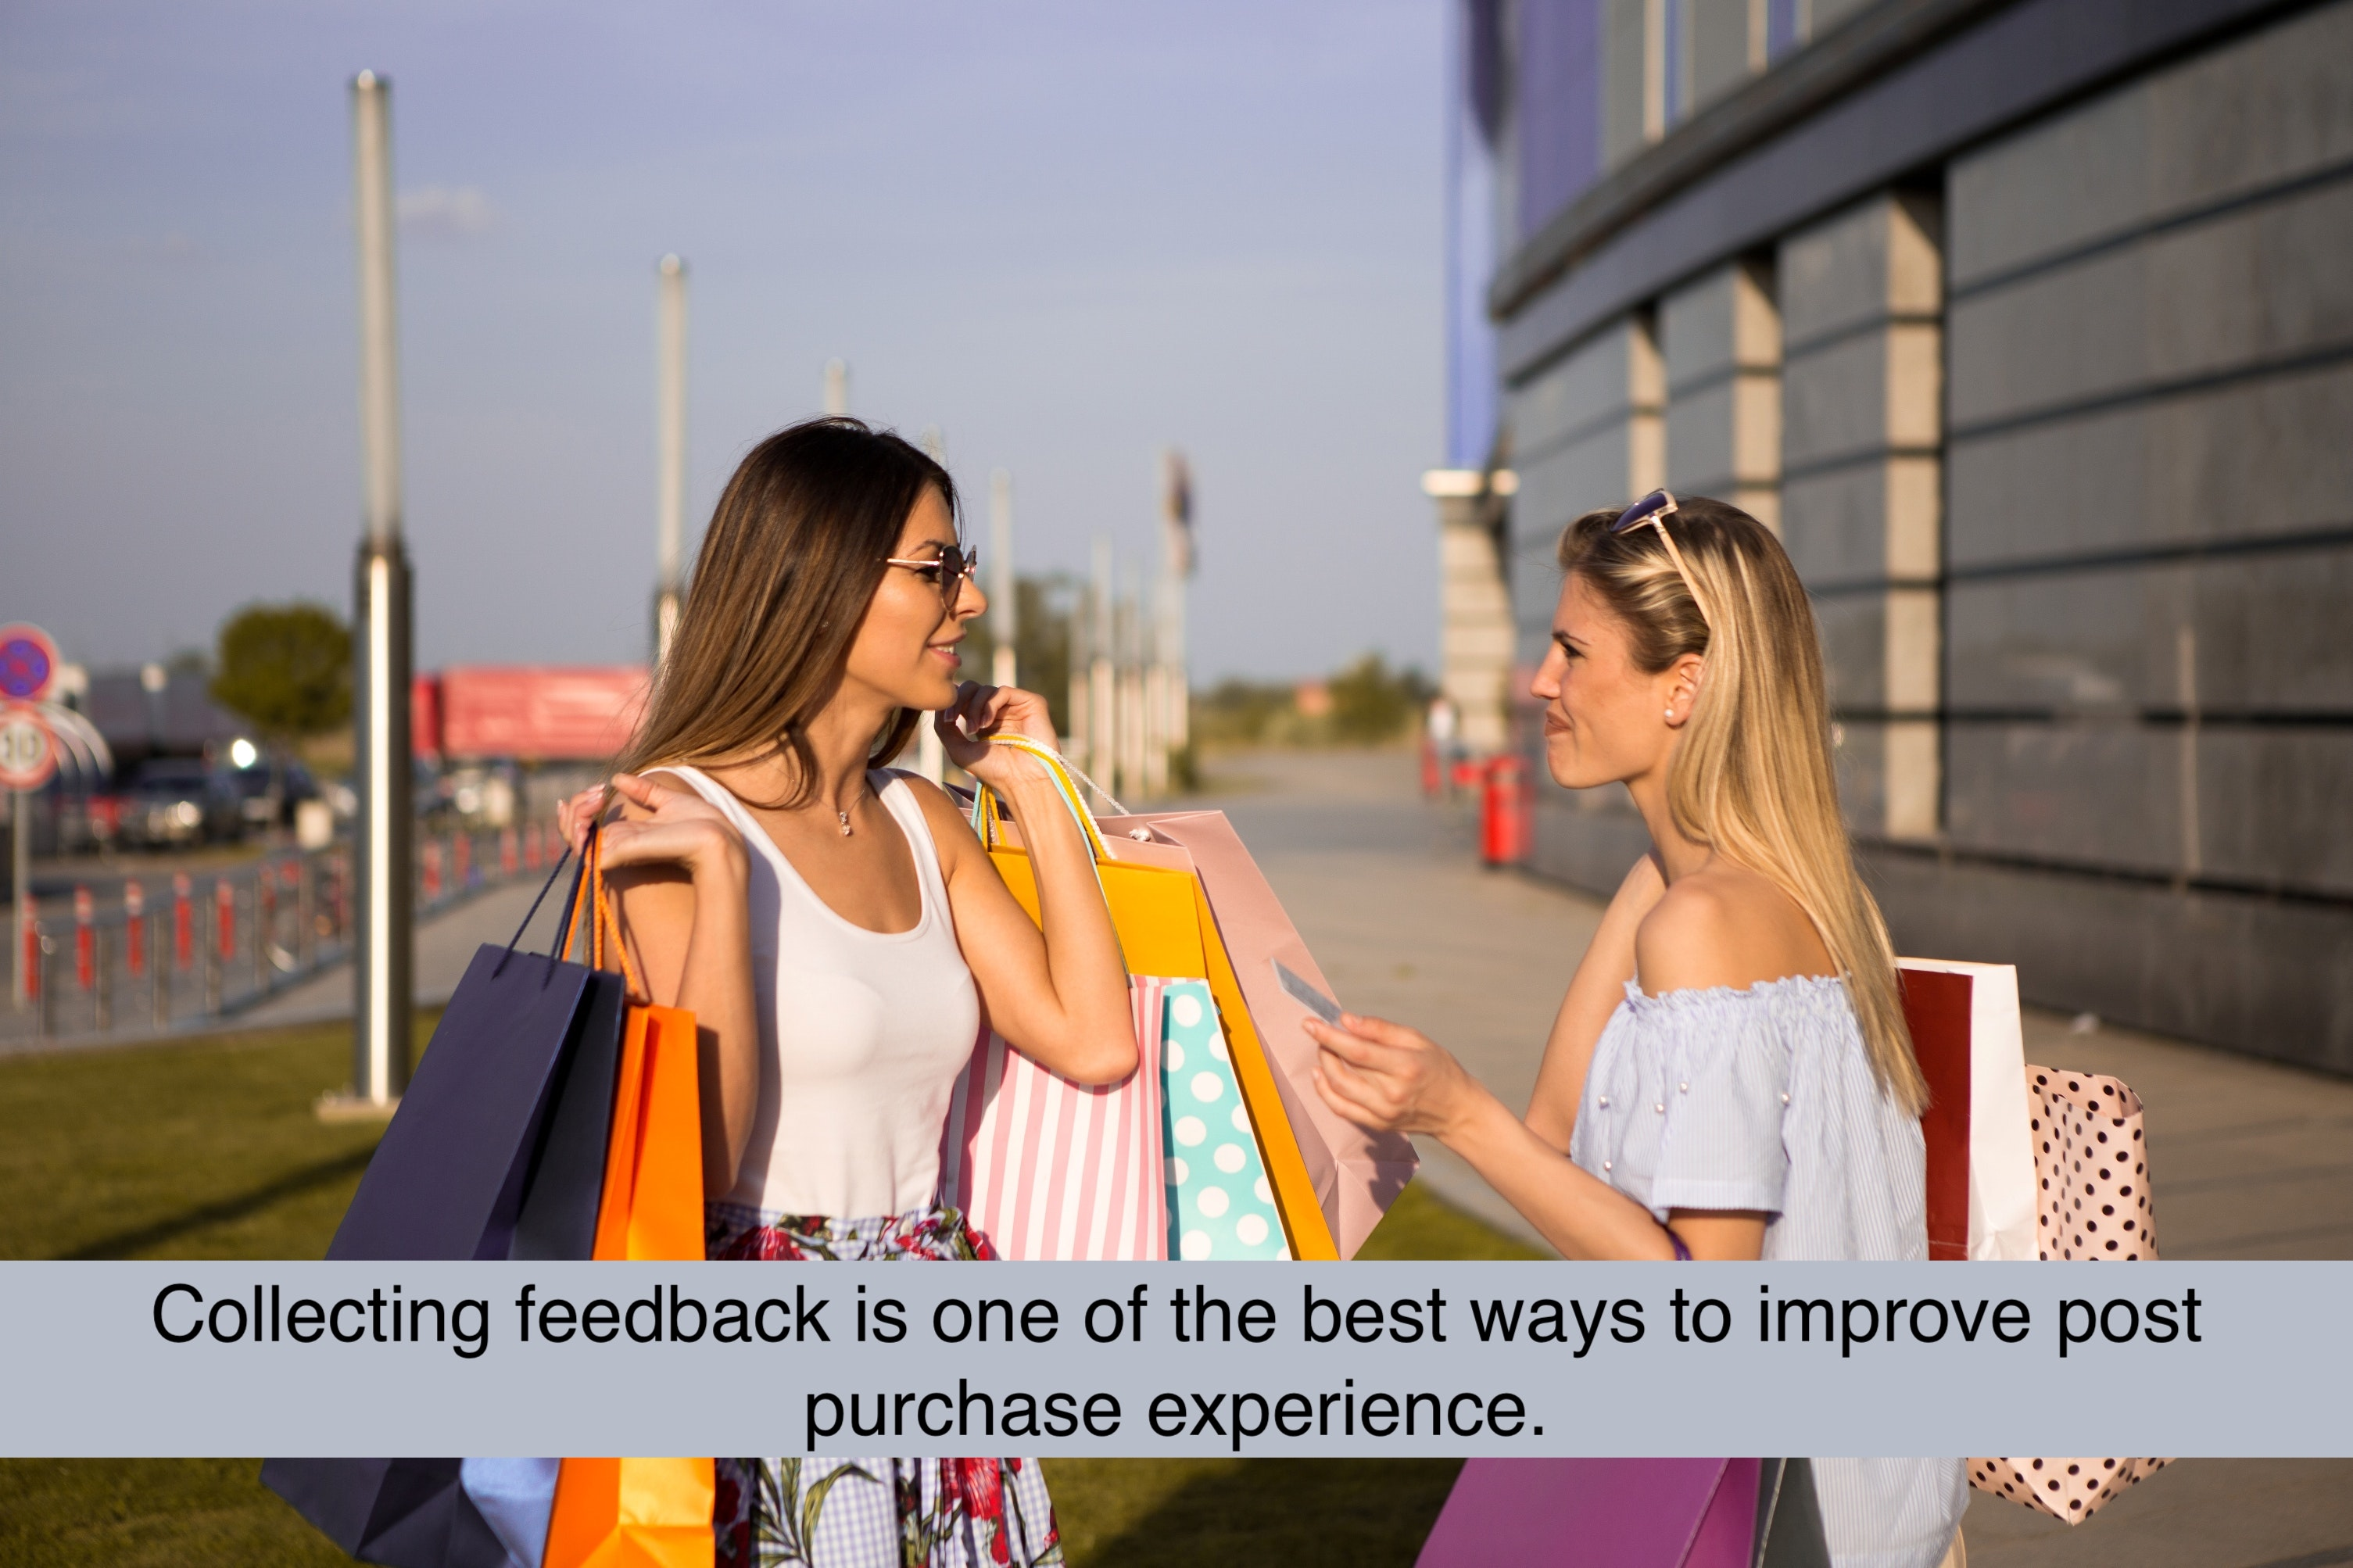 Collecting feedback is one of the best ways to improve post purchase experience.